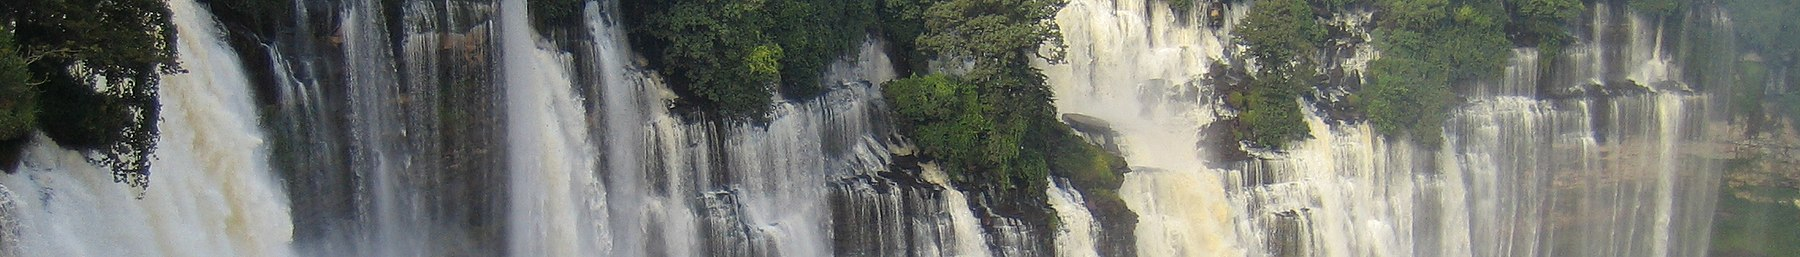 Malange (Angola) banner Kalandula waterfalls of the Lucala River.jpg